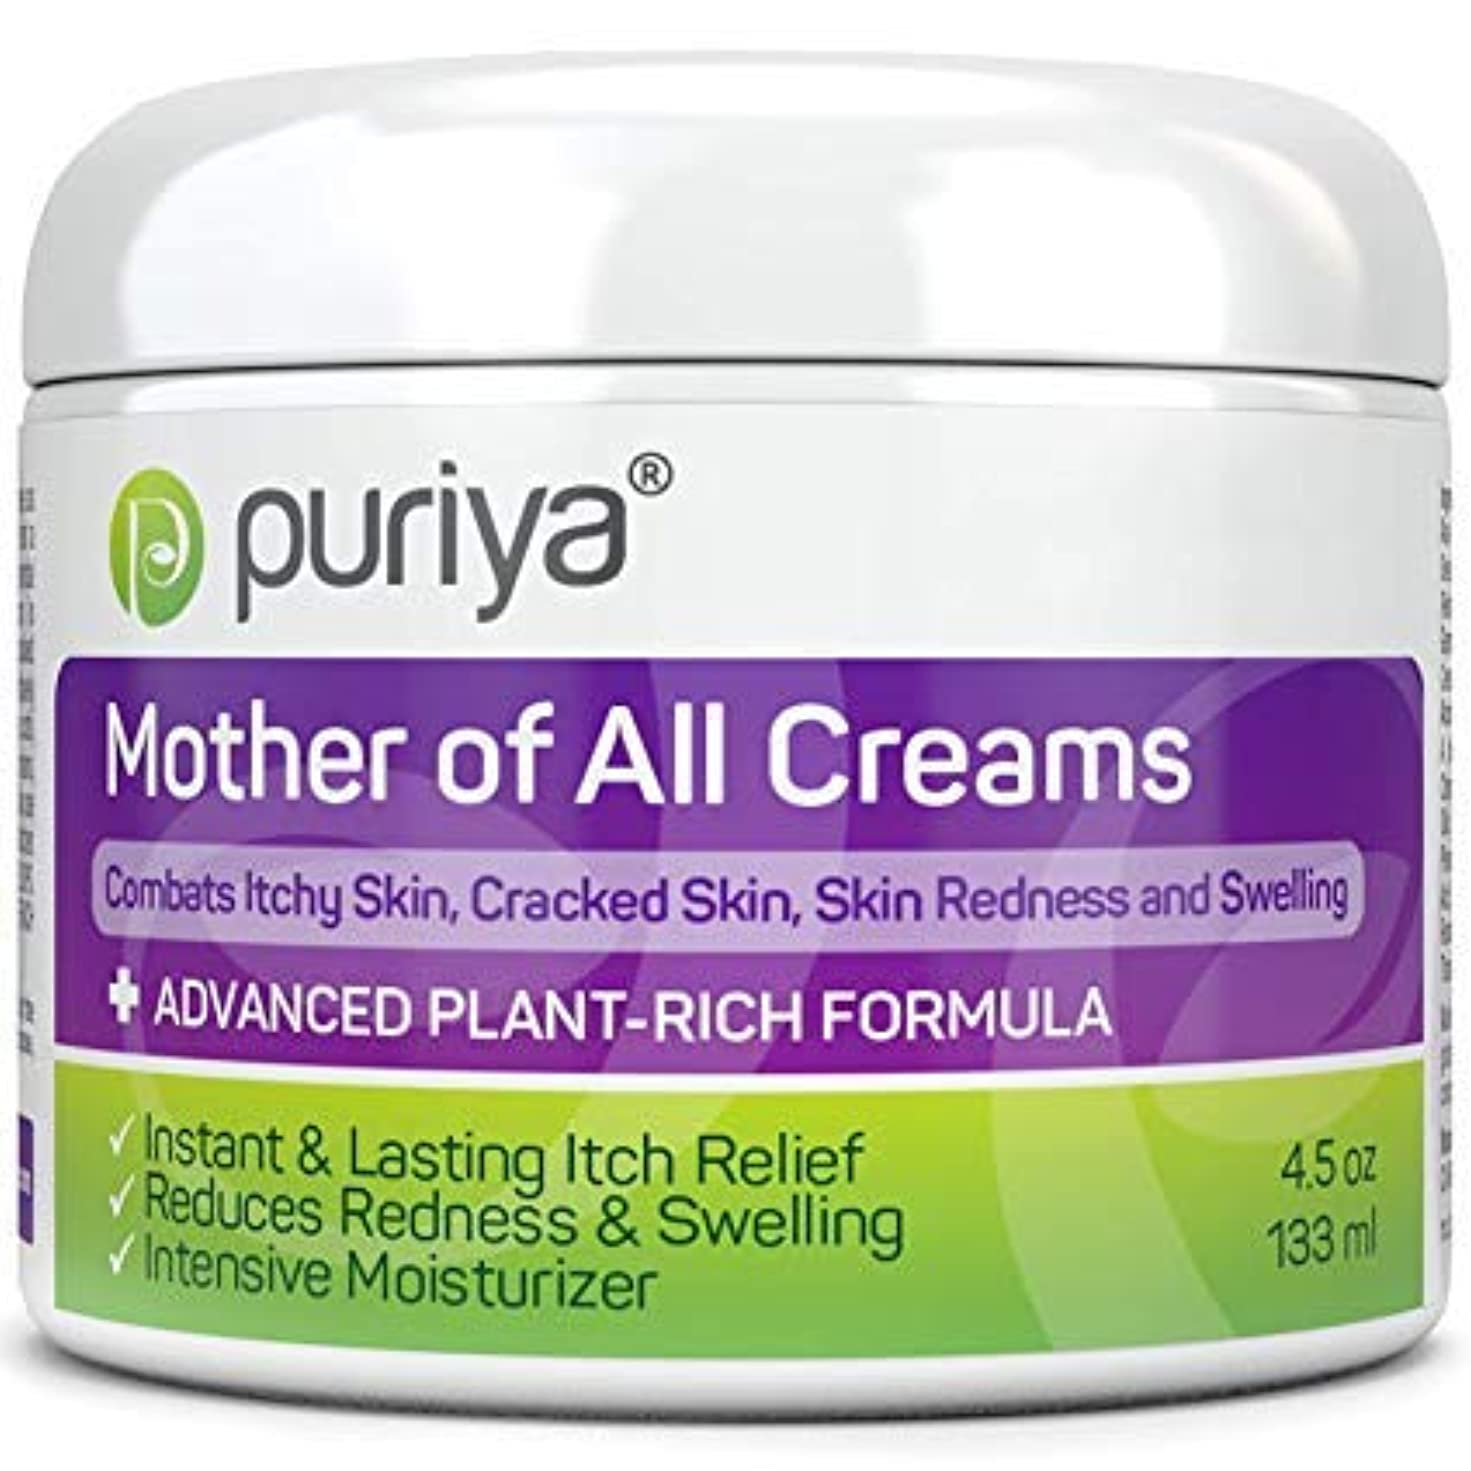 閃光どんよりしたビヨンPuriya マザーオブオールクリーム Mother of All Creams Cream For Eczema, Psoriasis, Dermatitis and Rashes. Powerful Plant Rich...